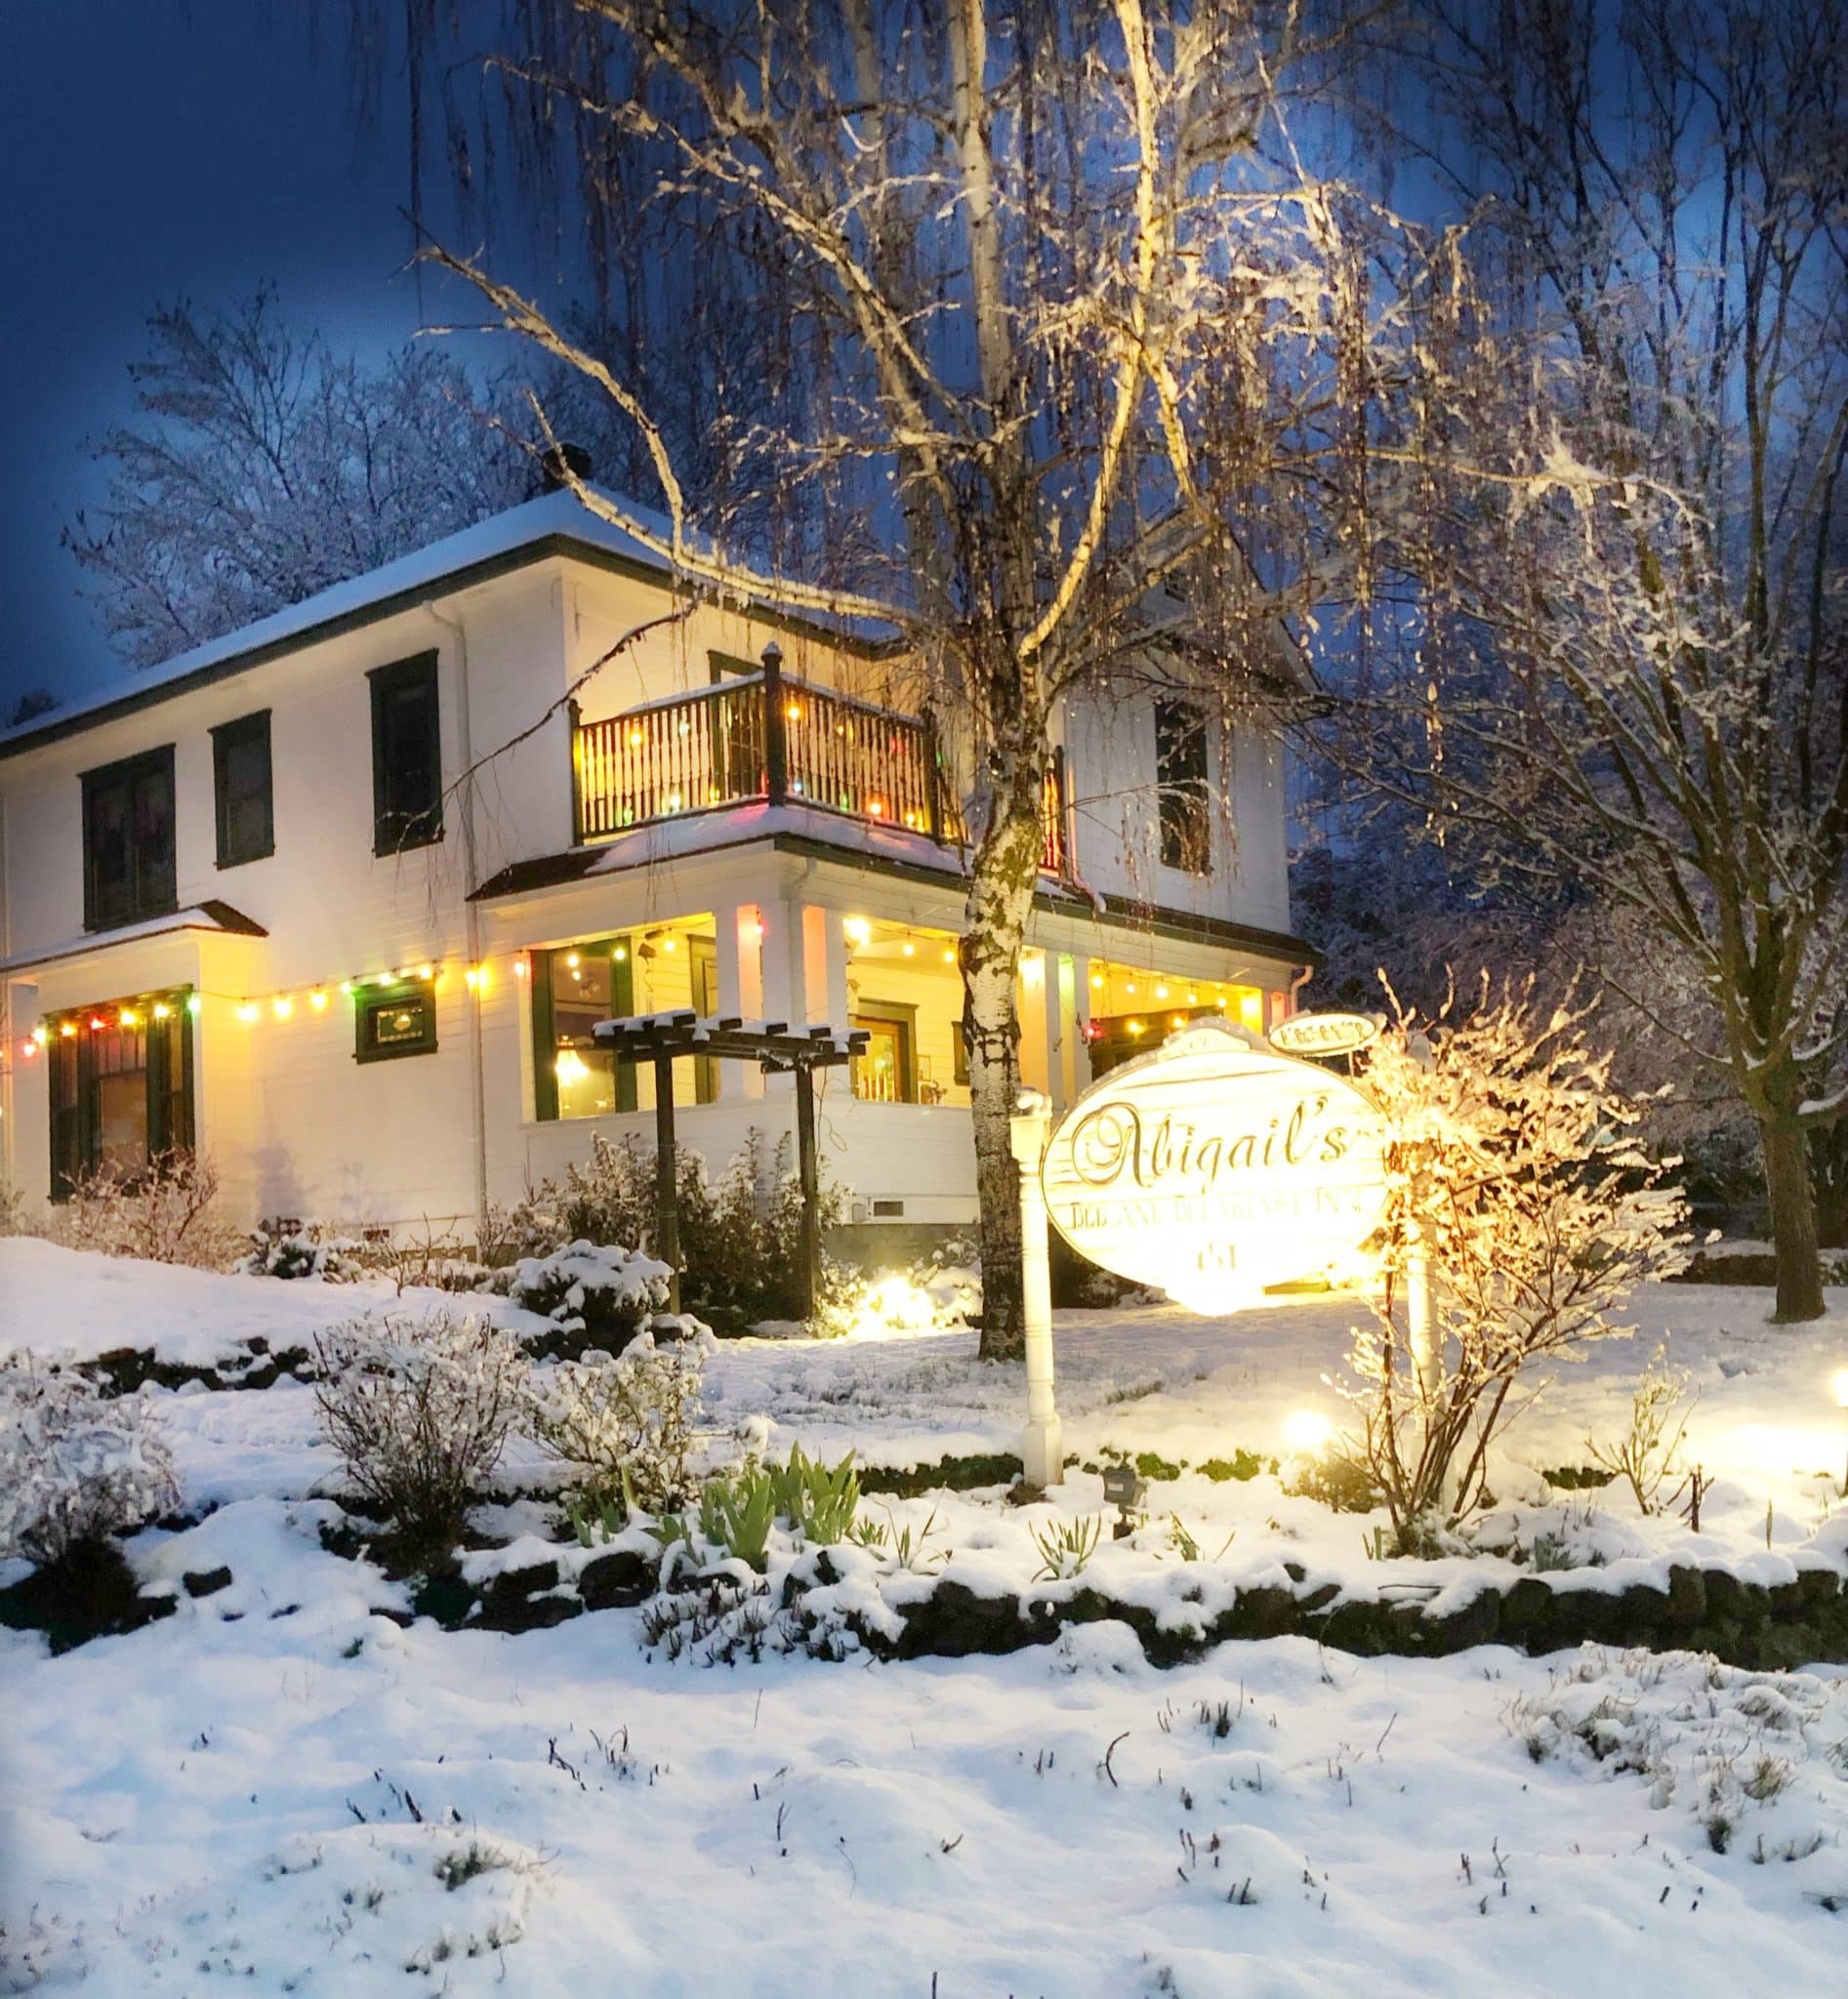 Abigail's Bed and Breakfast Inn Ashland, Or in Winter